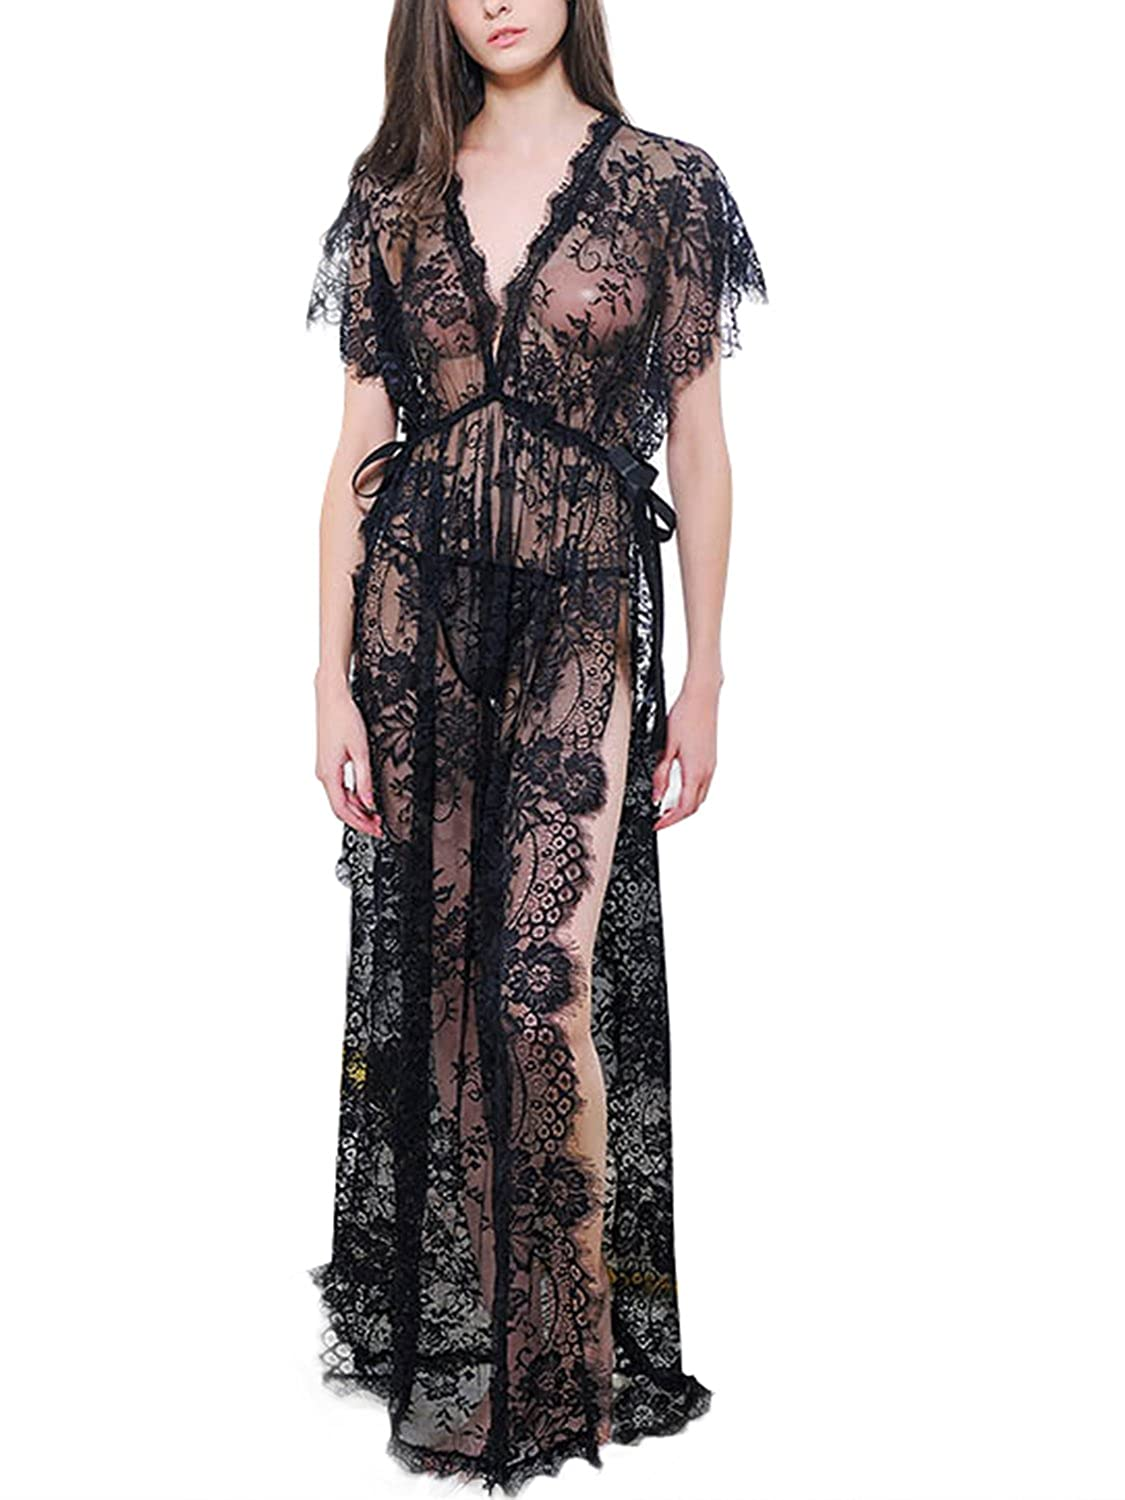 Amazon.com  CHARLES RICHARDS Women s Lingerie for Women Sexy Long Lace  Dress Sheer Gown See Through Kimono Robe  Clothing fc71bc0d6